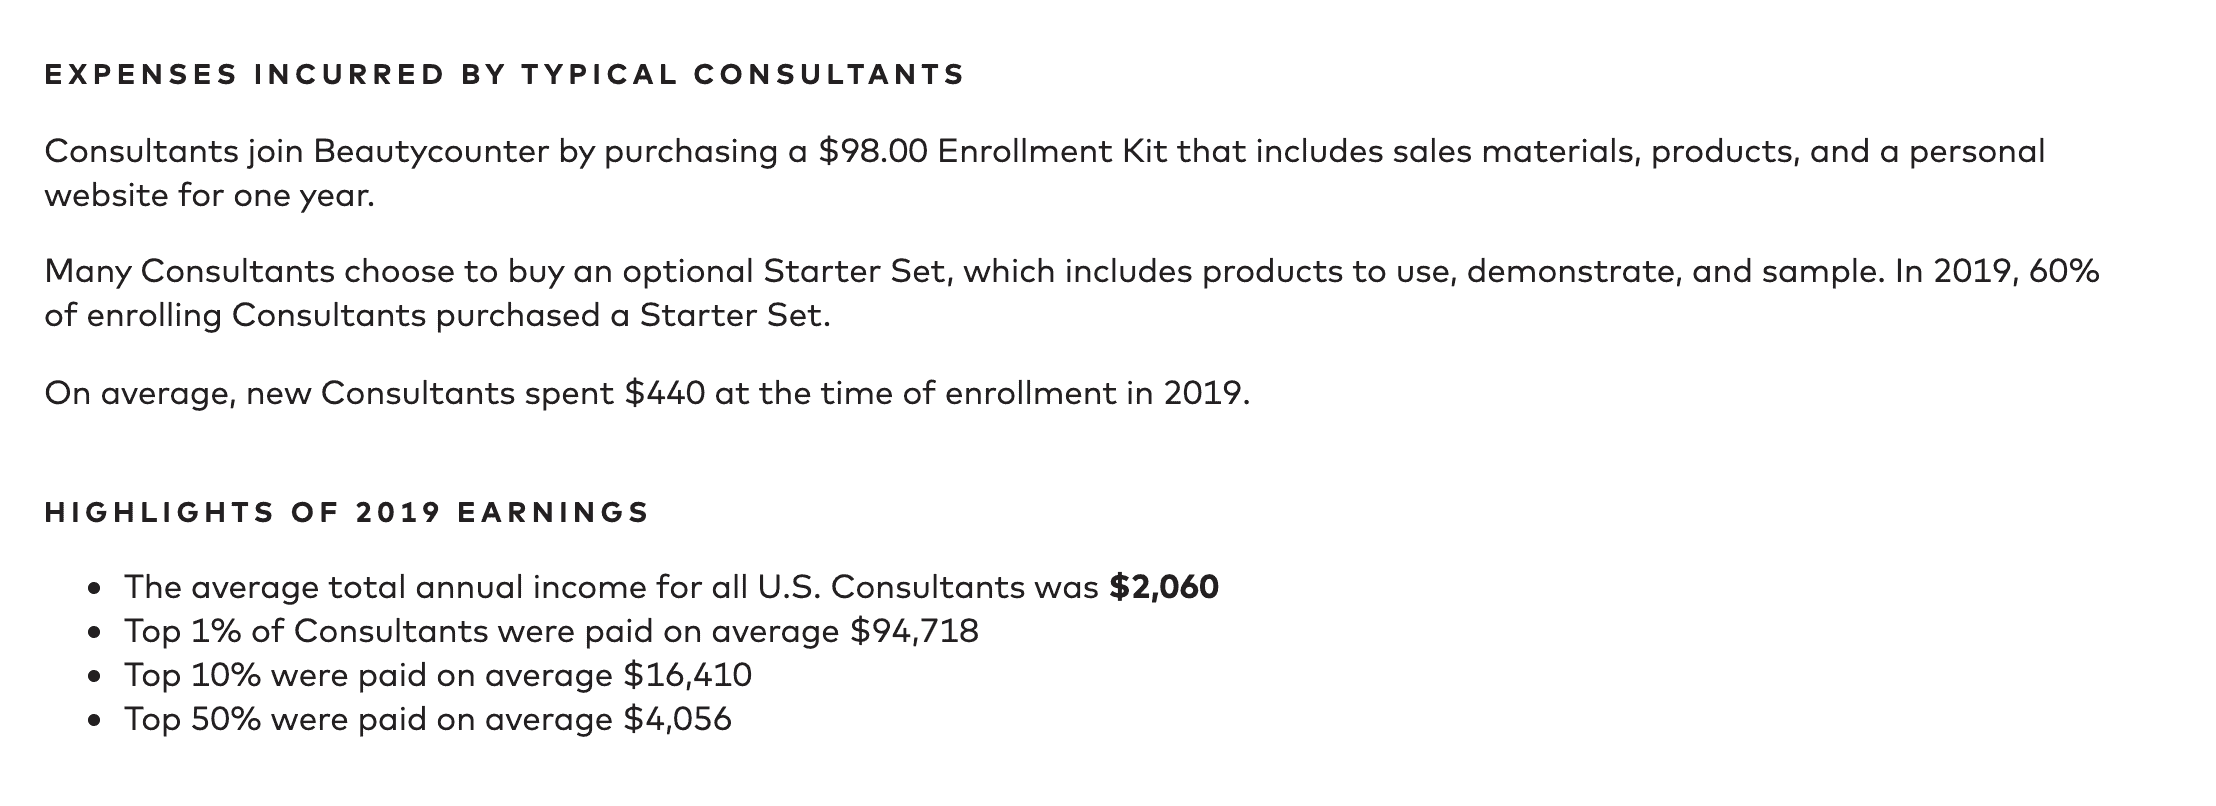 Beautycounter typical expenses for reps